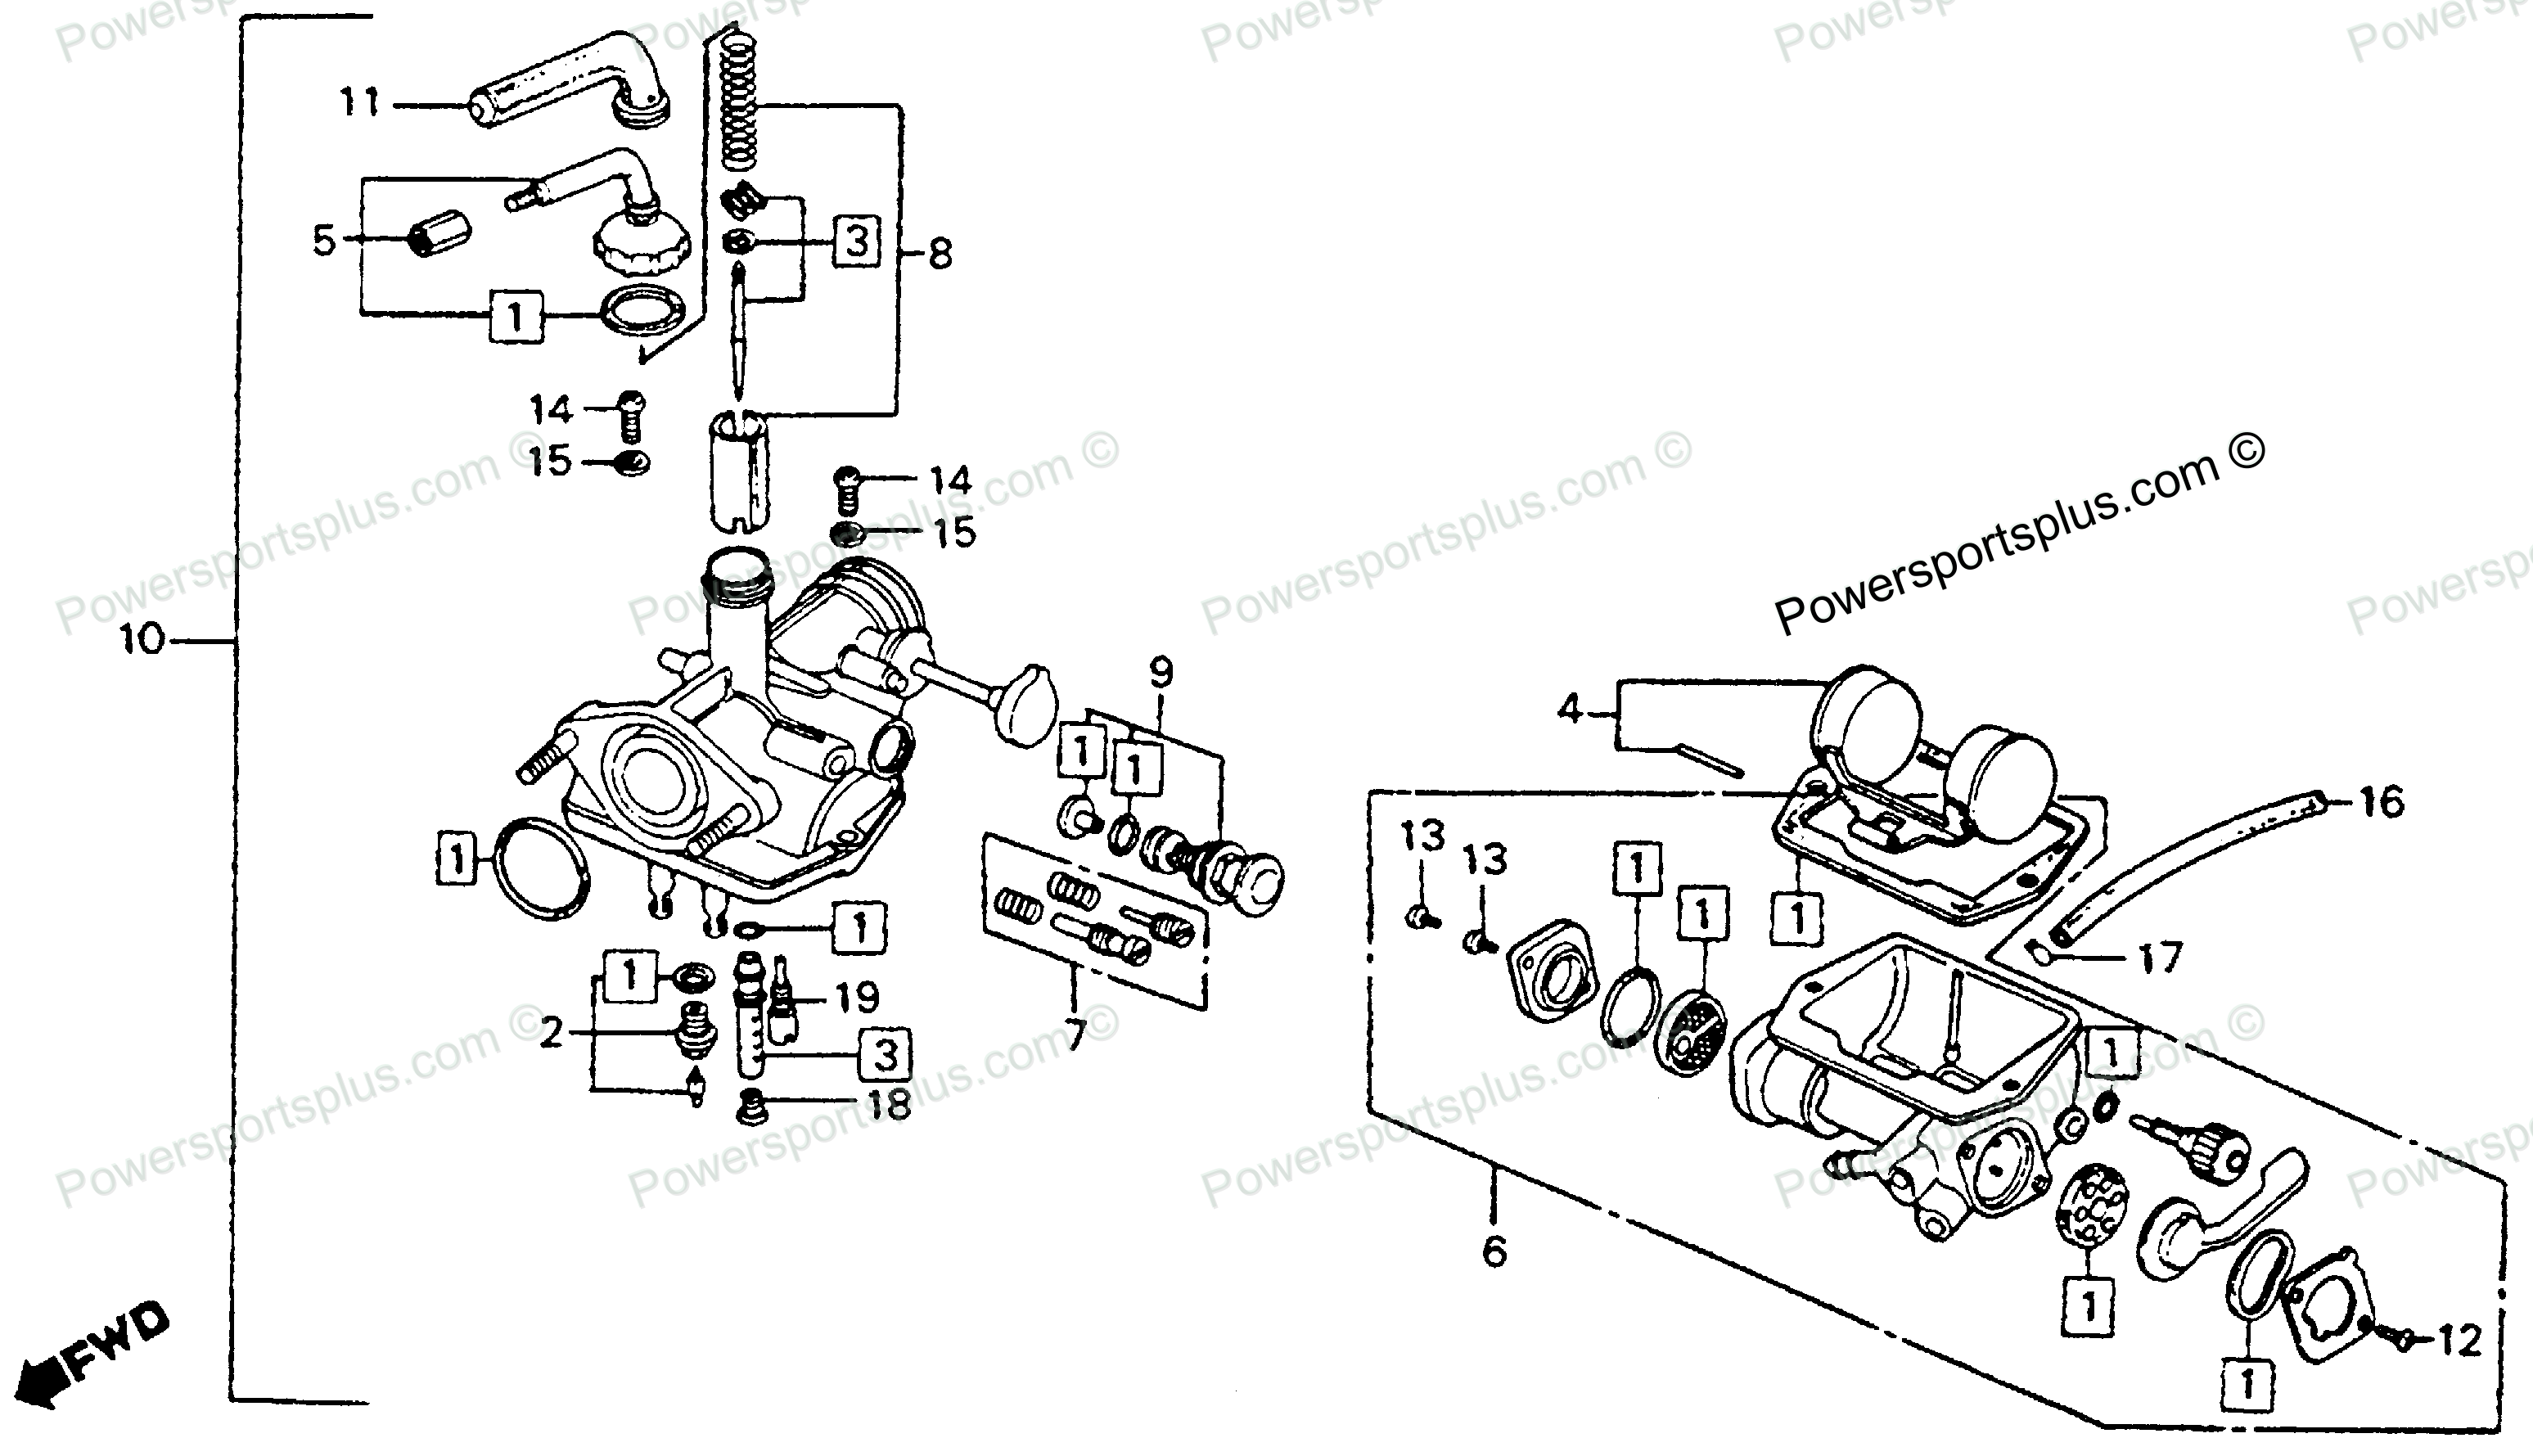 Diagram Of Honda Motorcycle Parts Ct90 A Carburetor